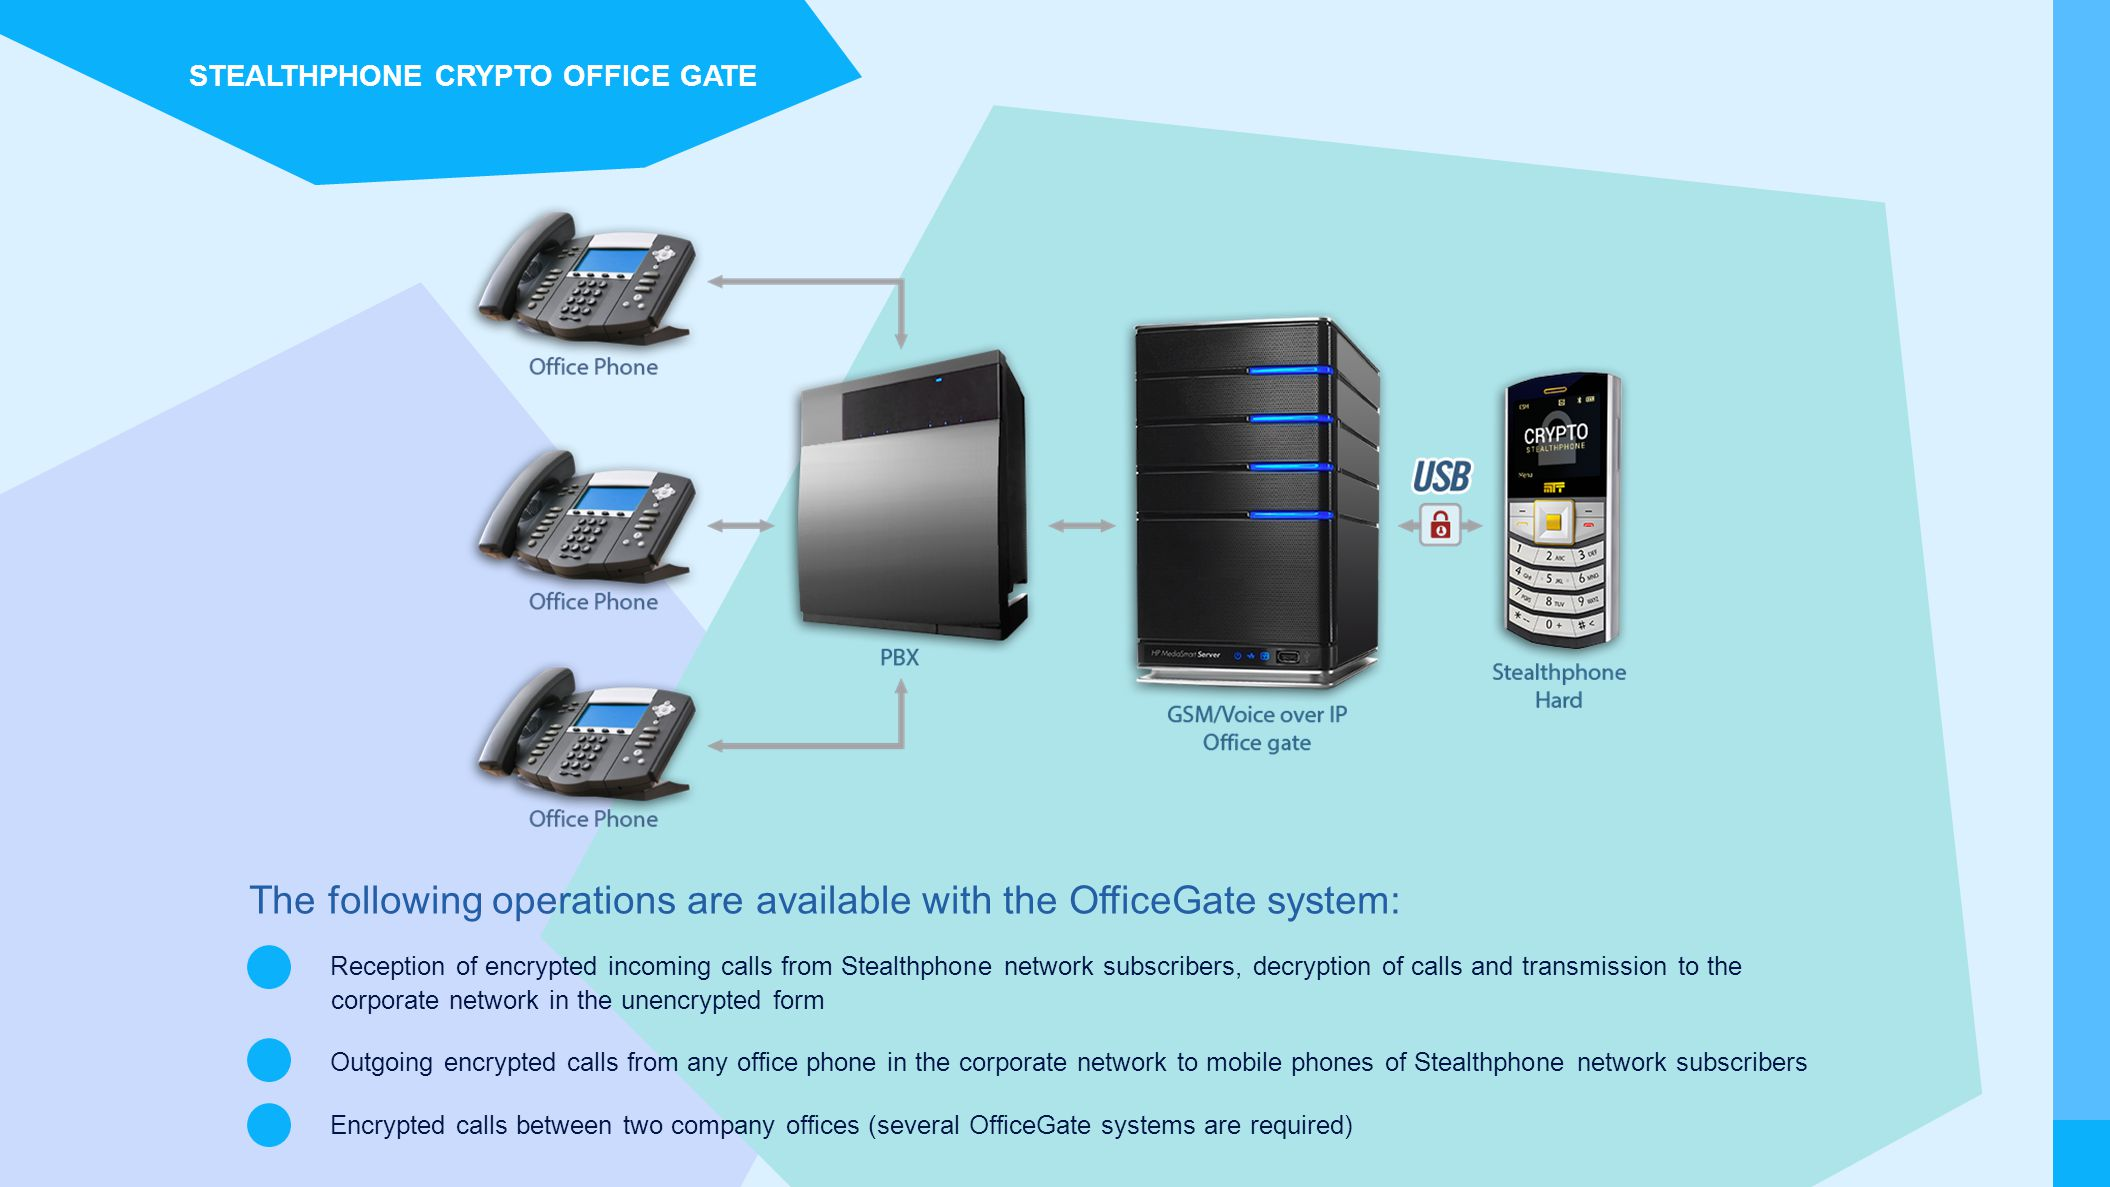 The following operations are available with the OfficeGate system: